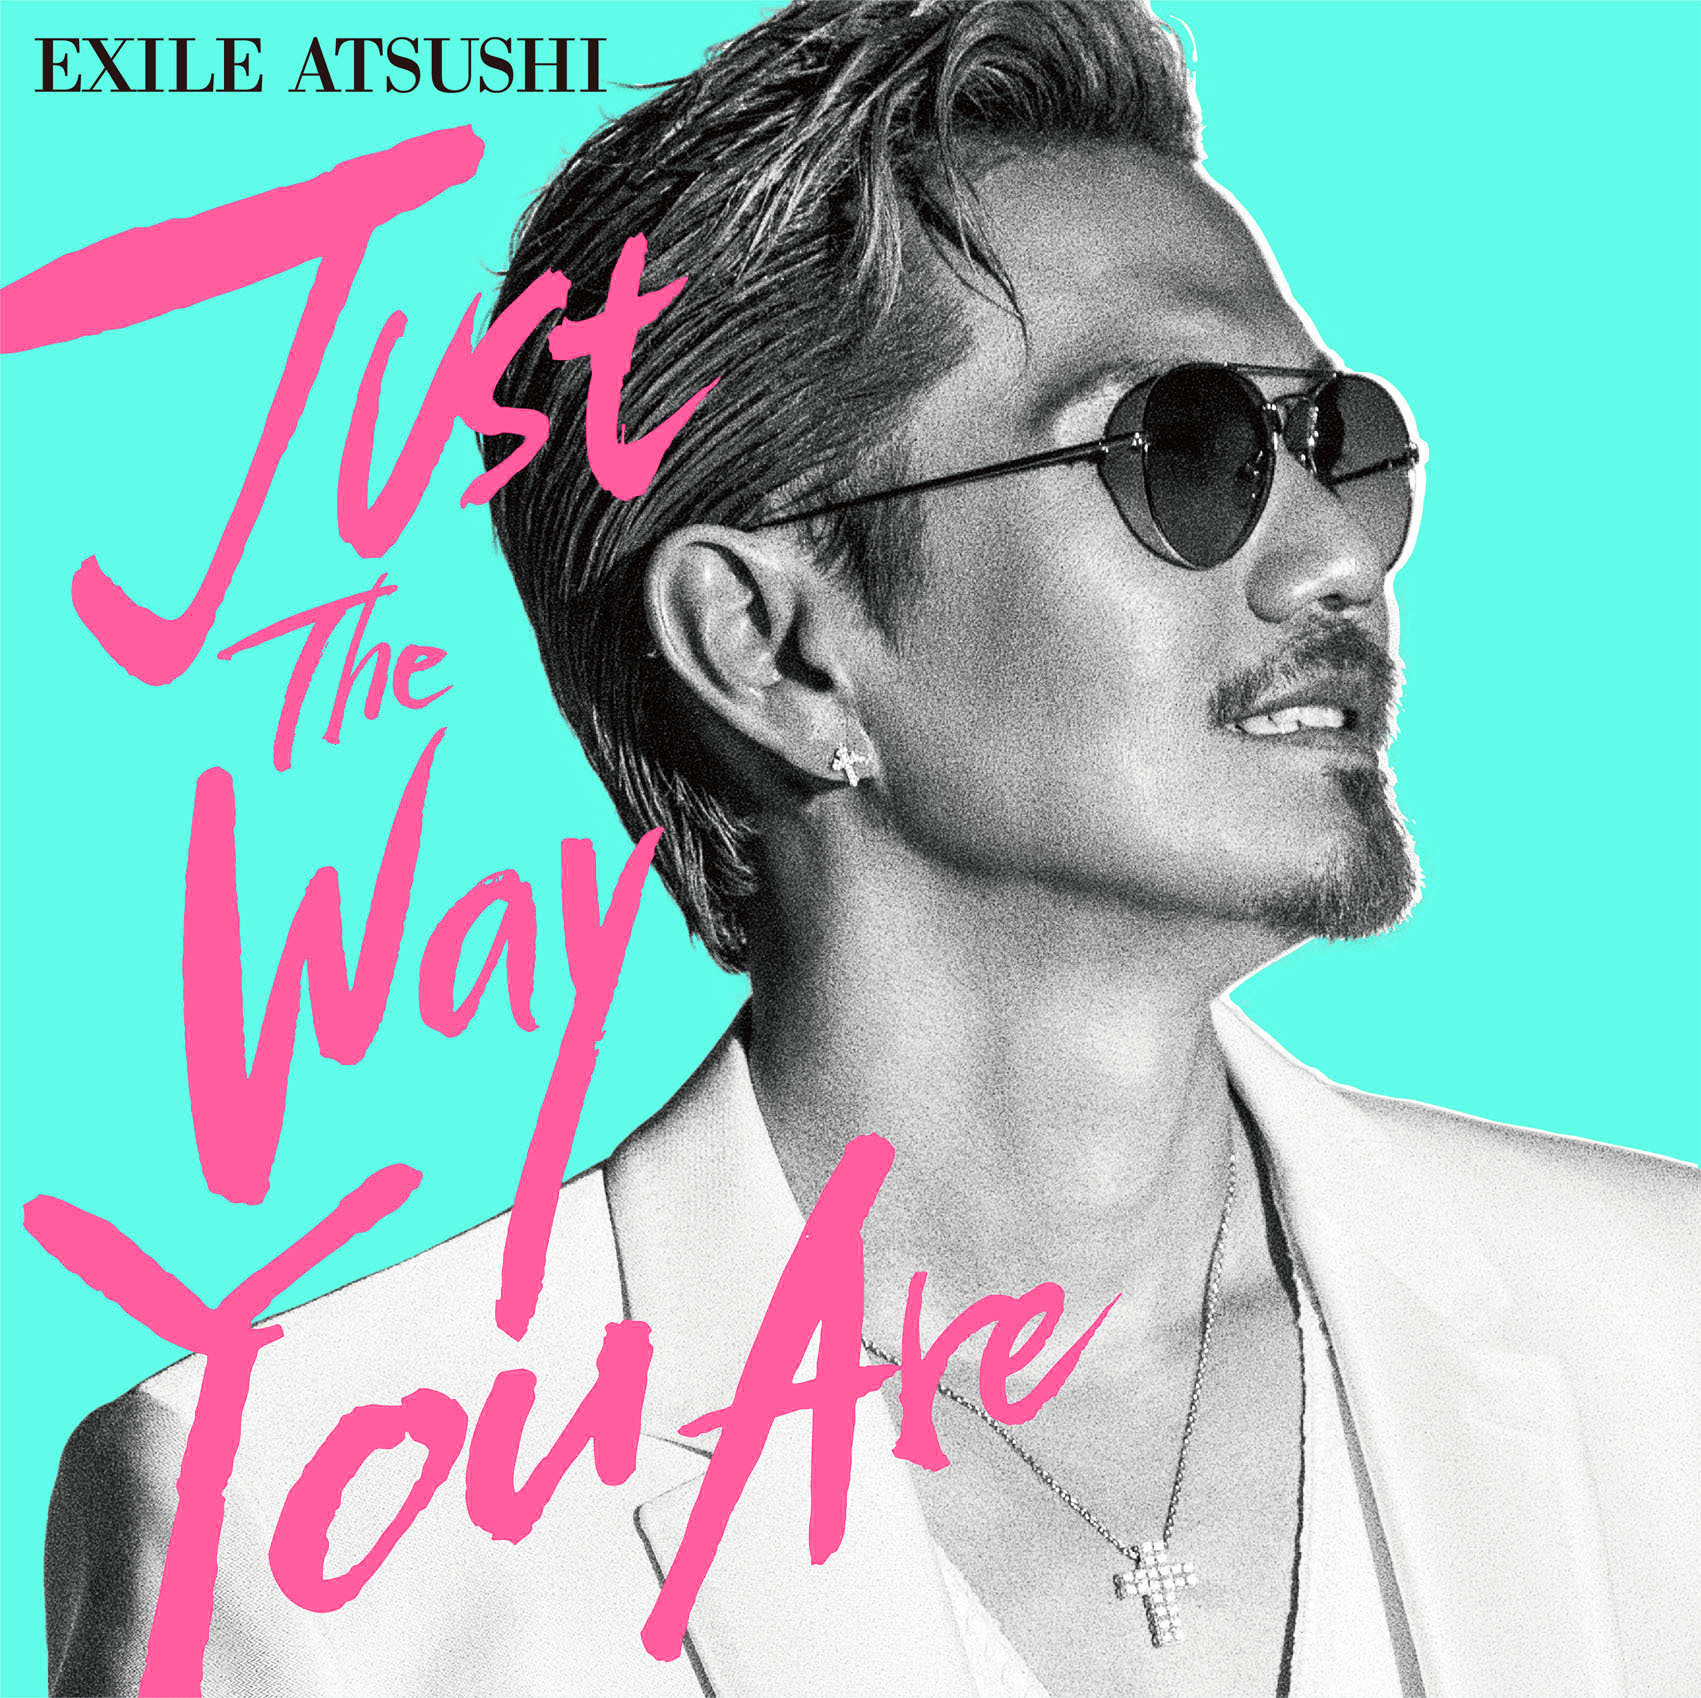 EXILE ATSUSHI「Just The Way You Are」CD+DVDジャケット写真